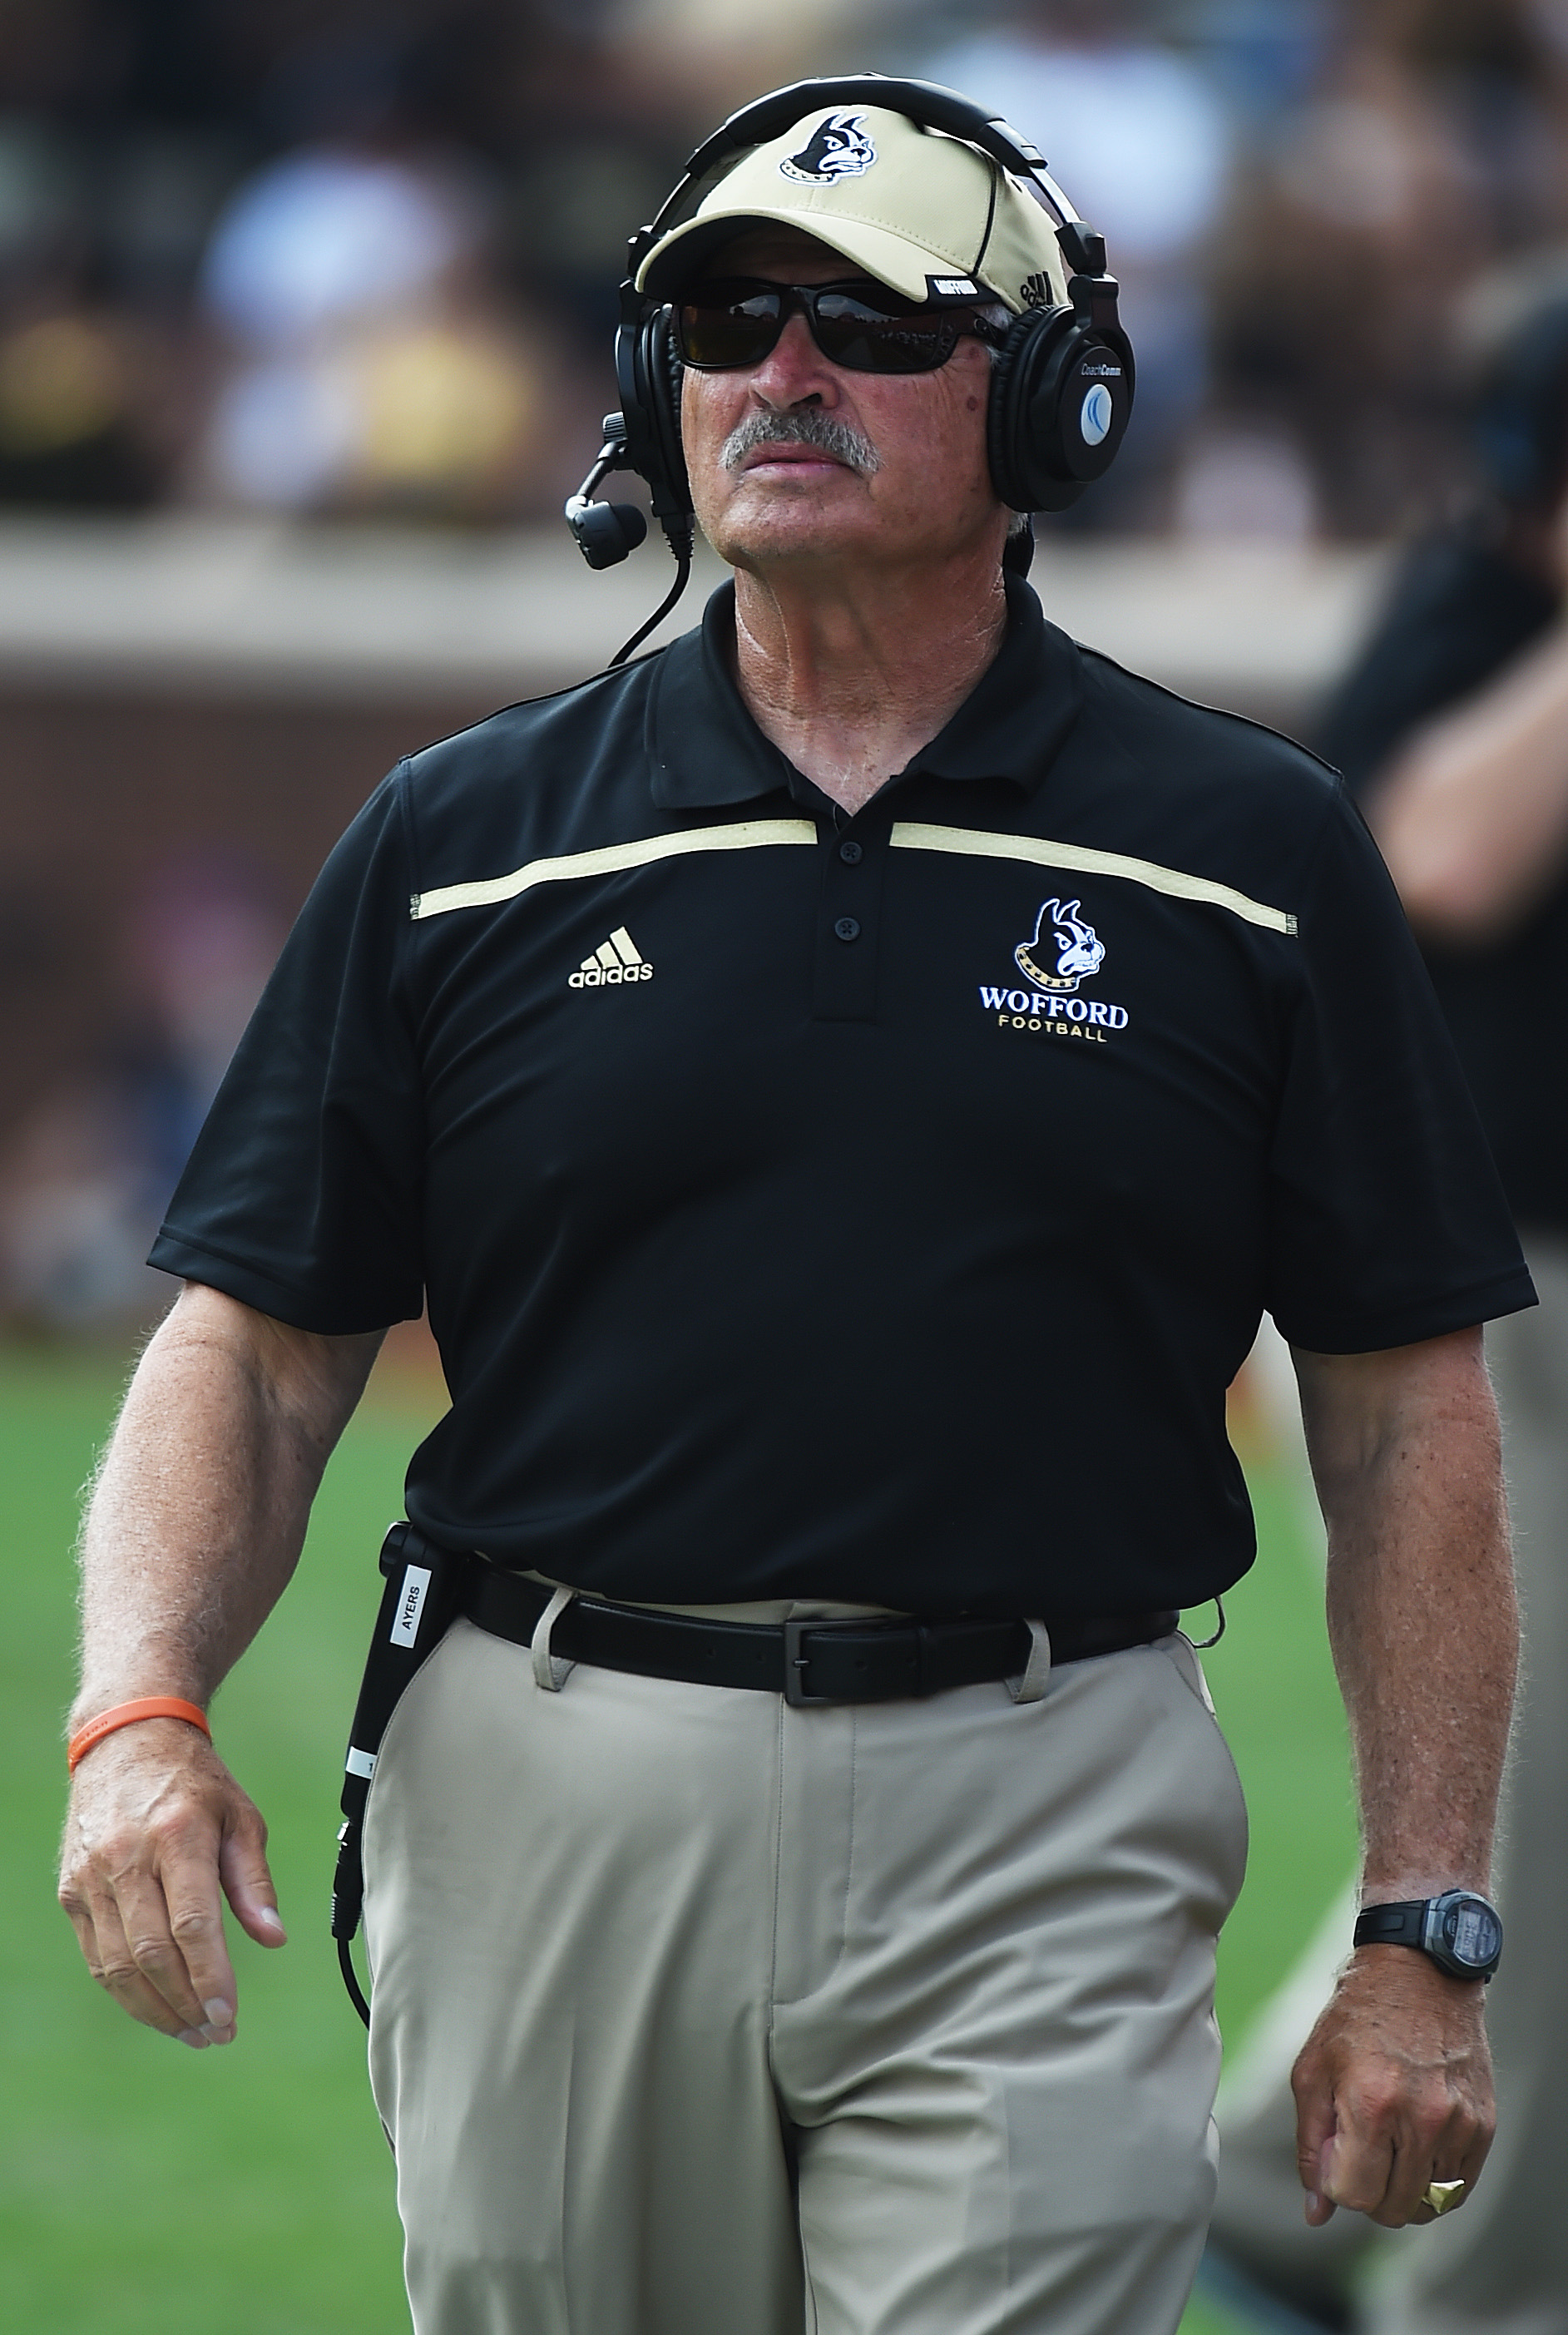 Wofford head coach Mike Ayers walks on the sideline during the second half of an NCAA college football game against Clemson on Saturday, Sept. 5, 2015, in Clemson, S.C.  (AP Photo/Rainier Ehrhardt)